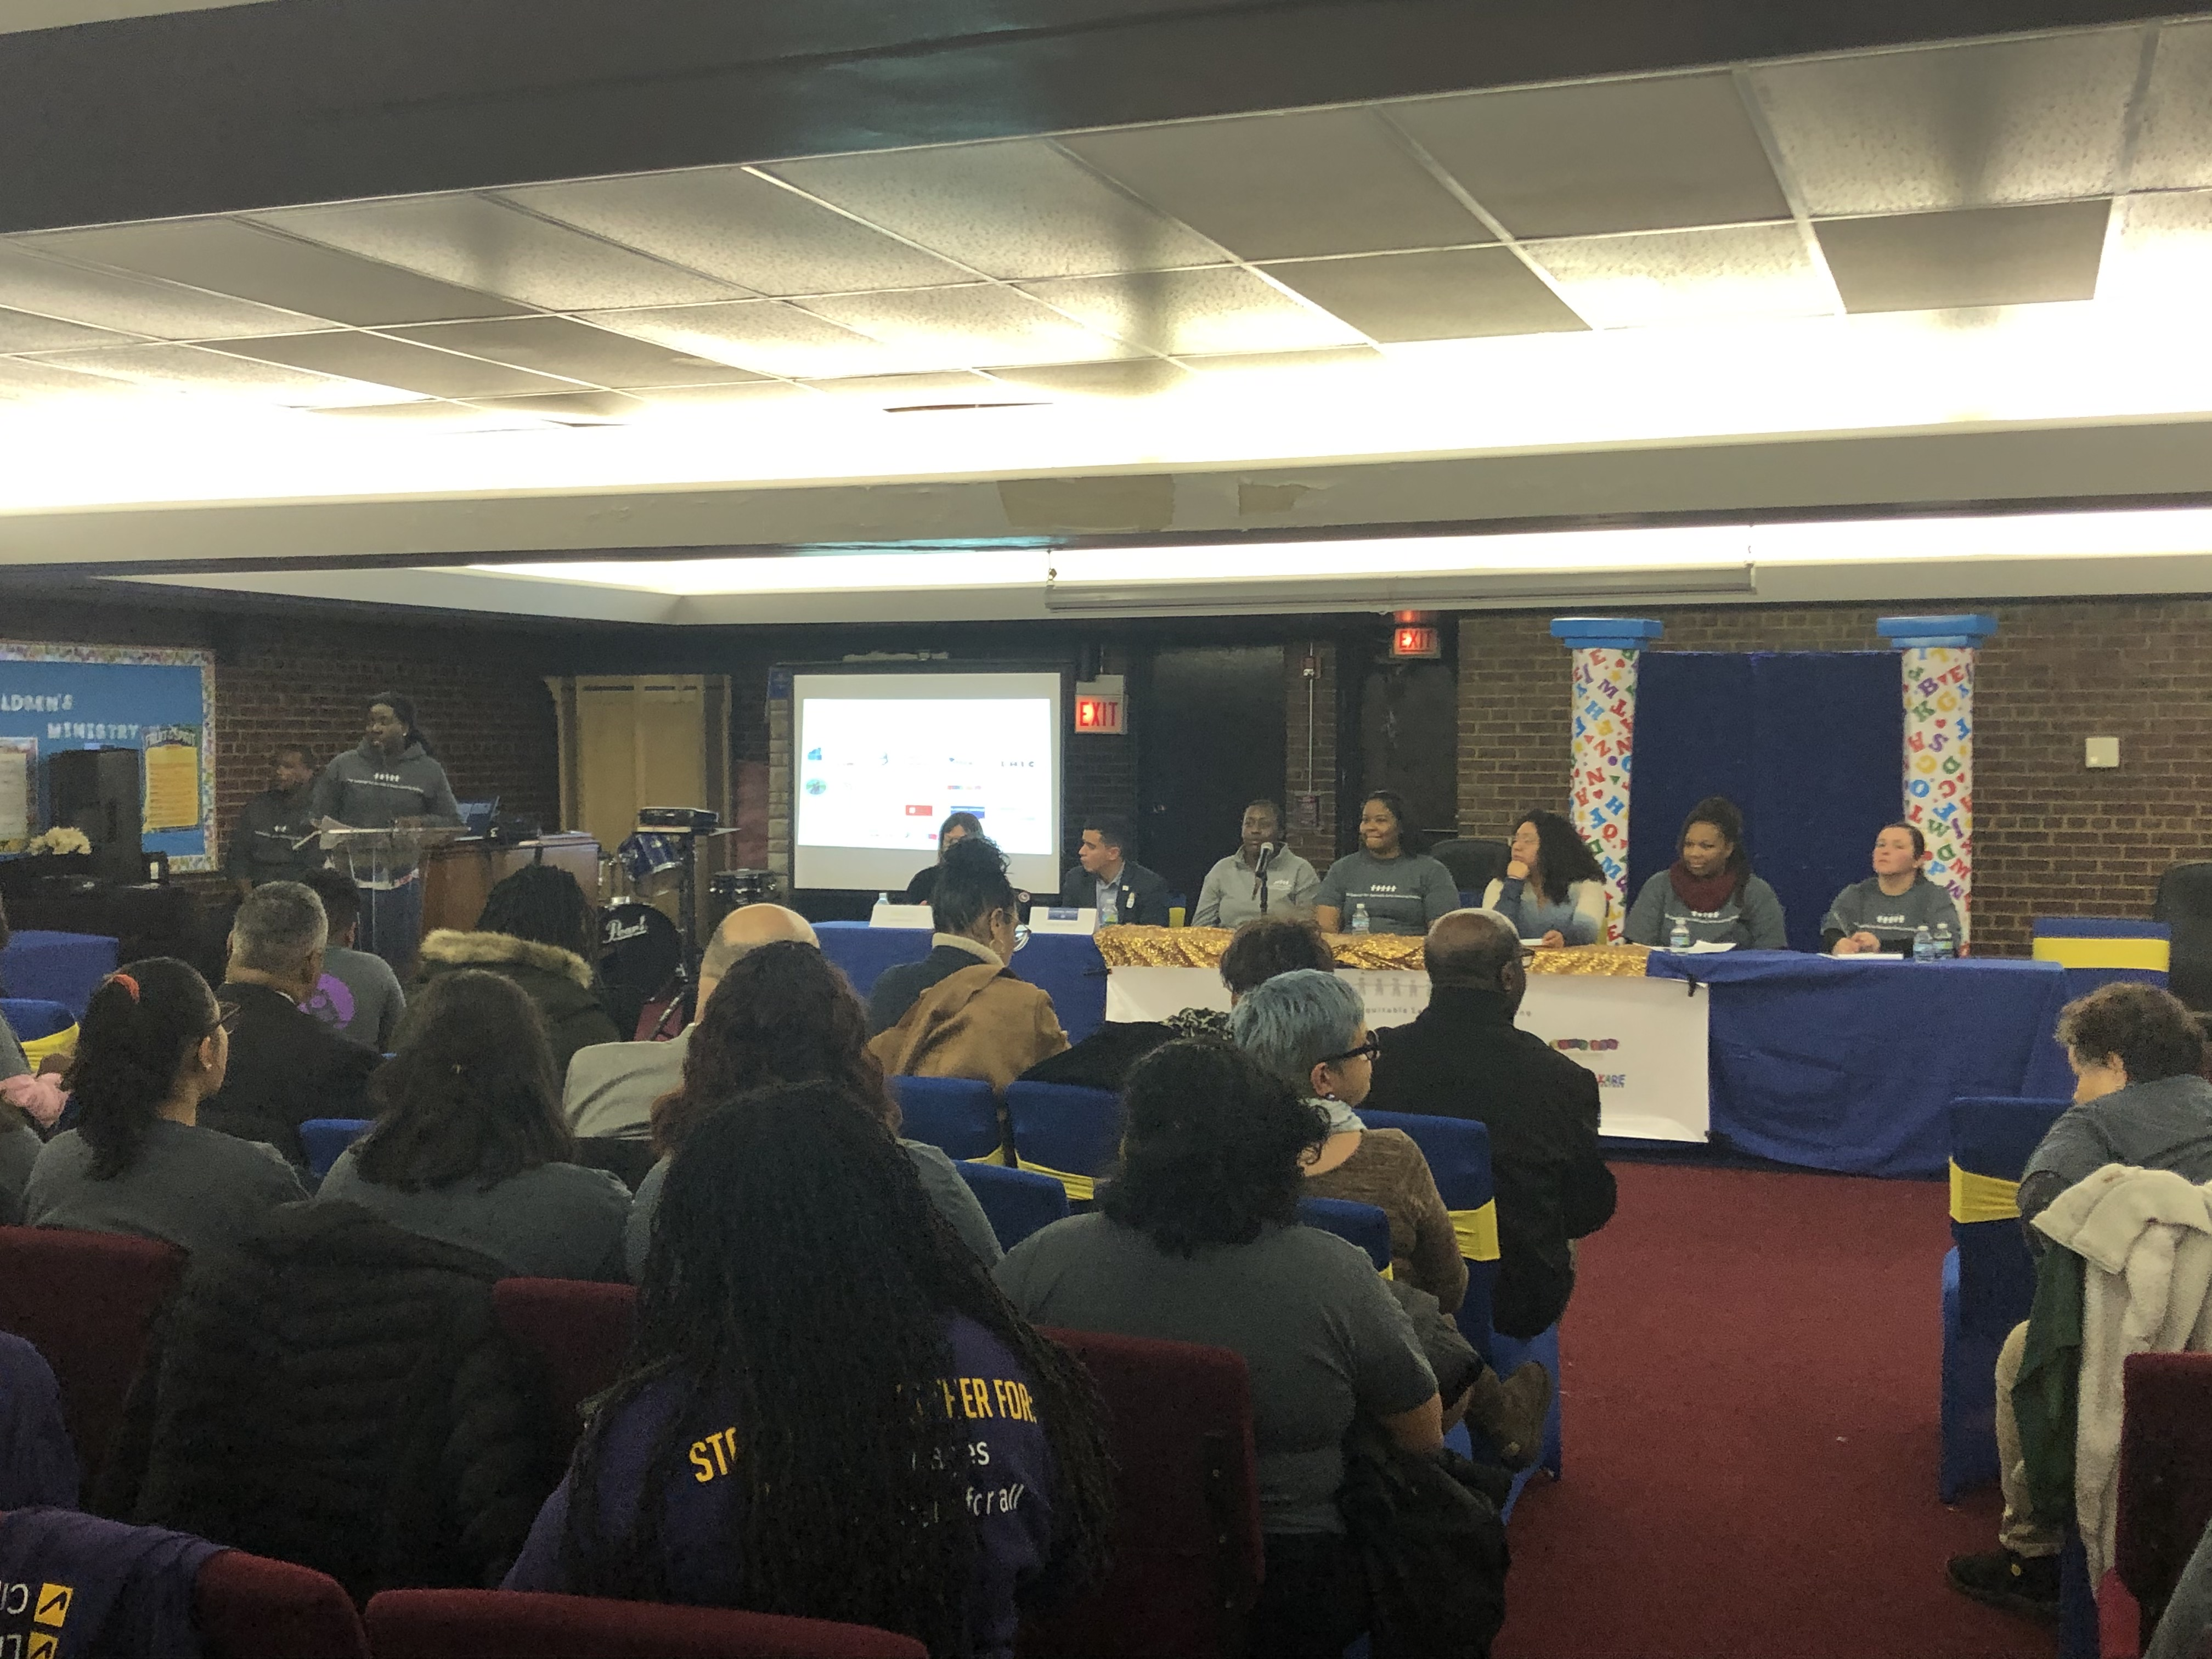 Parents anxious about upheaval in the day care and preschool systems in Chicago sought answers at a meeting Nov. 19, 2019, at Antioch Baptist Church in Englewood.